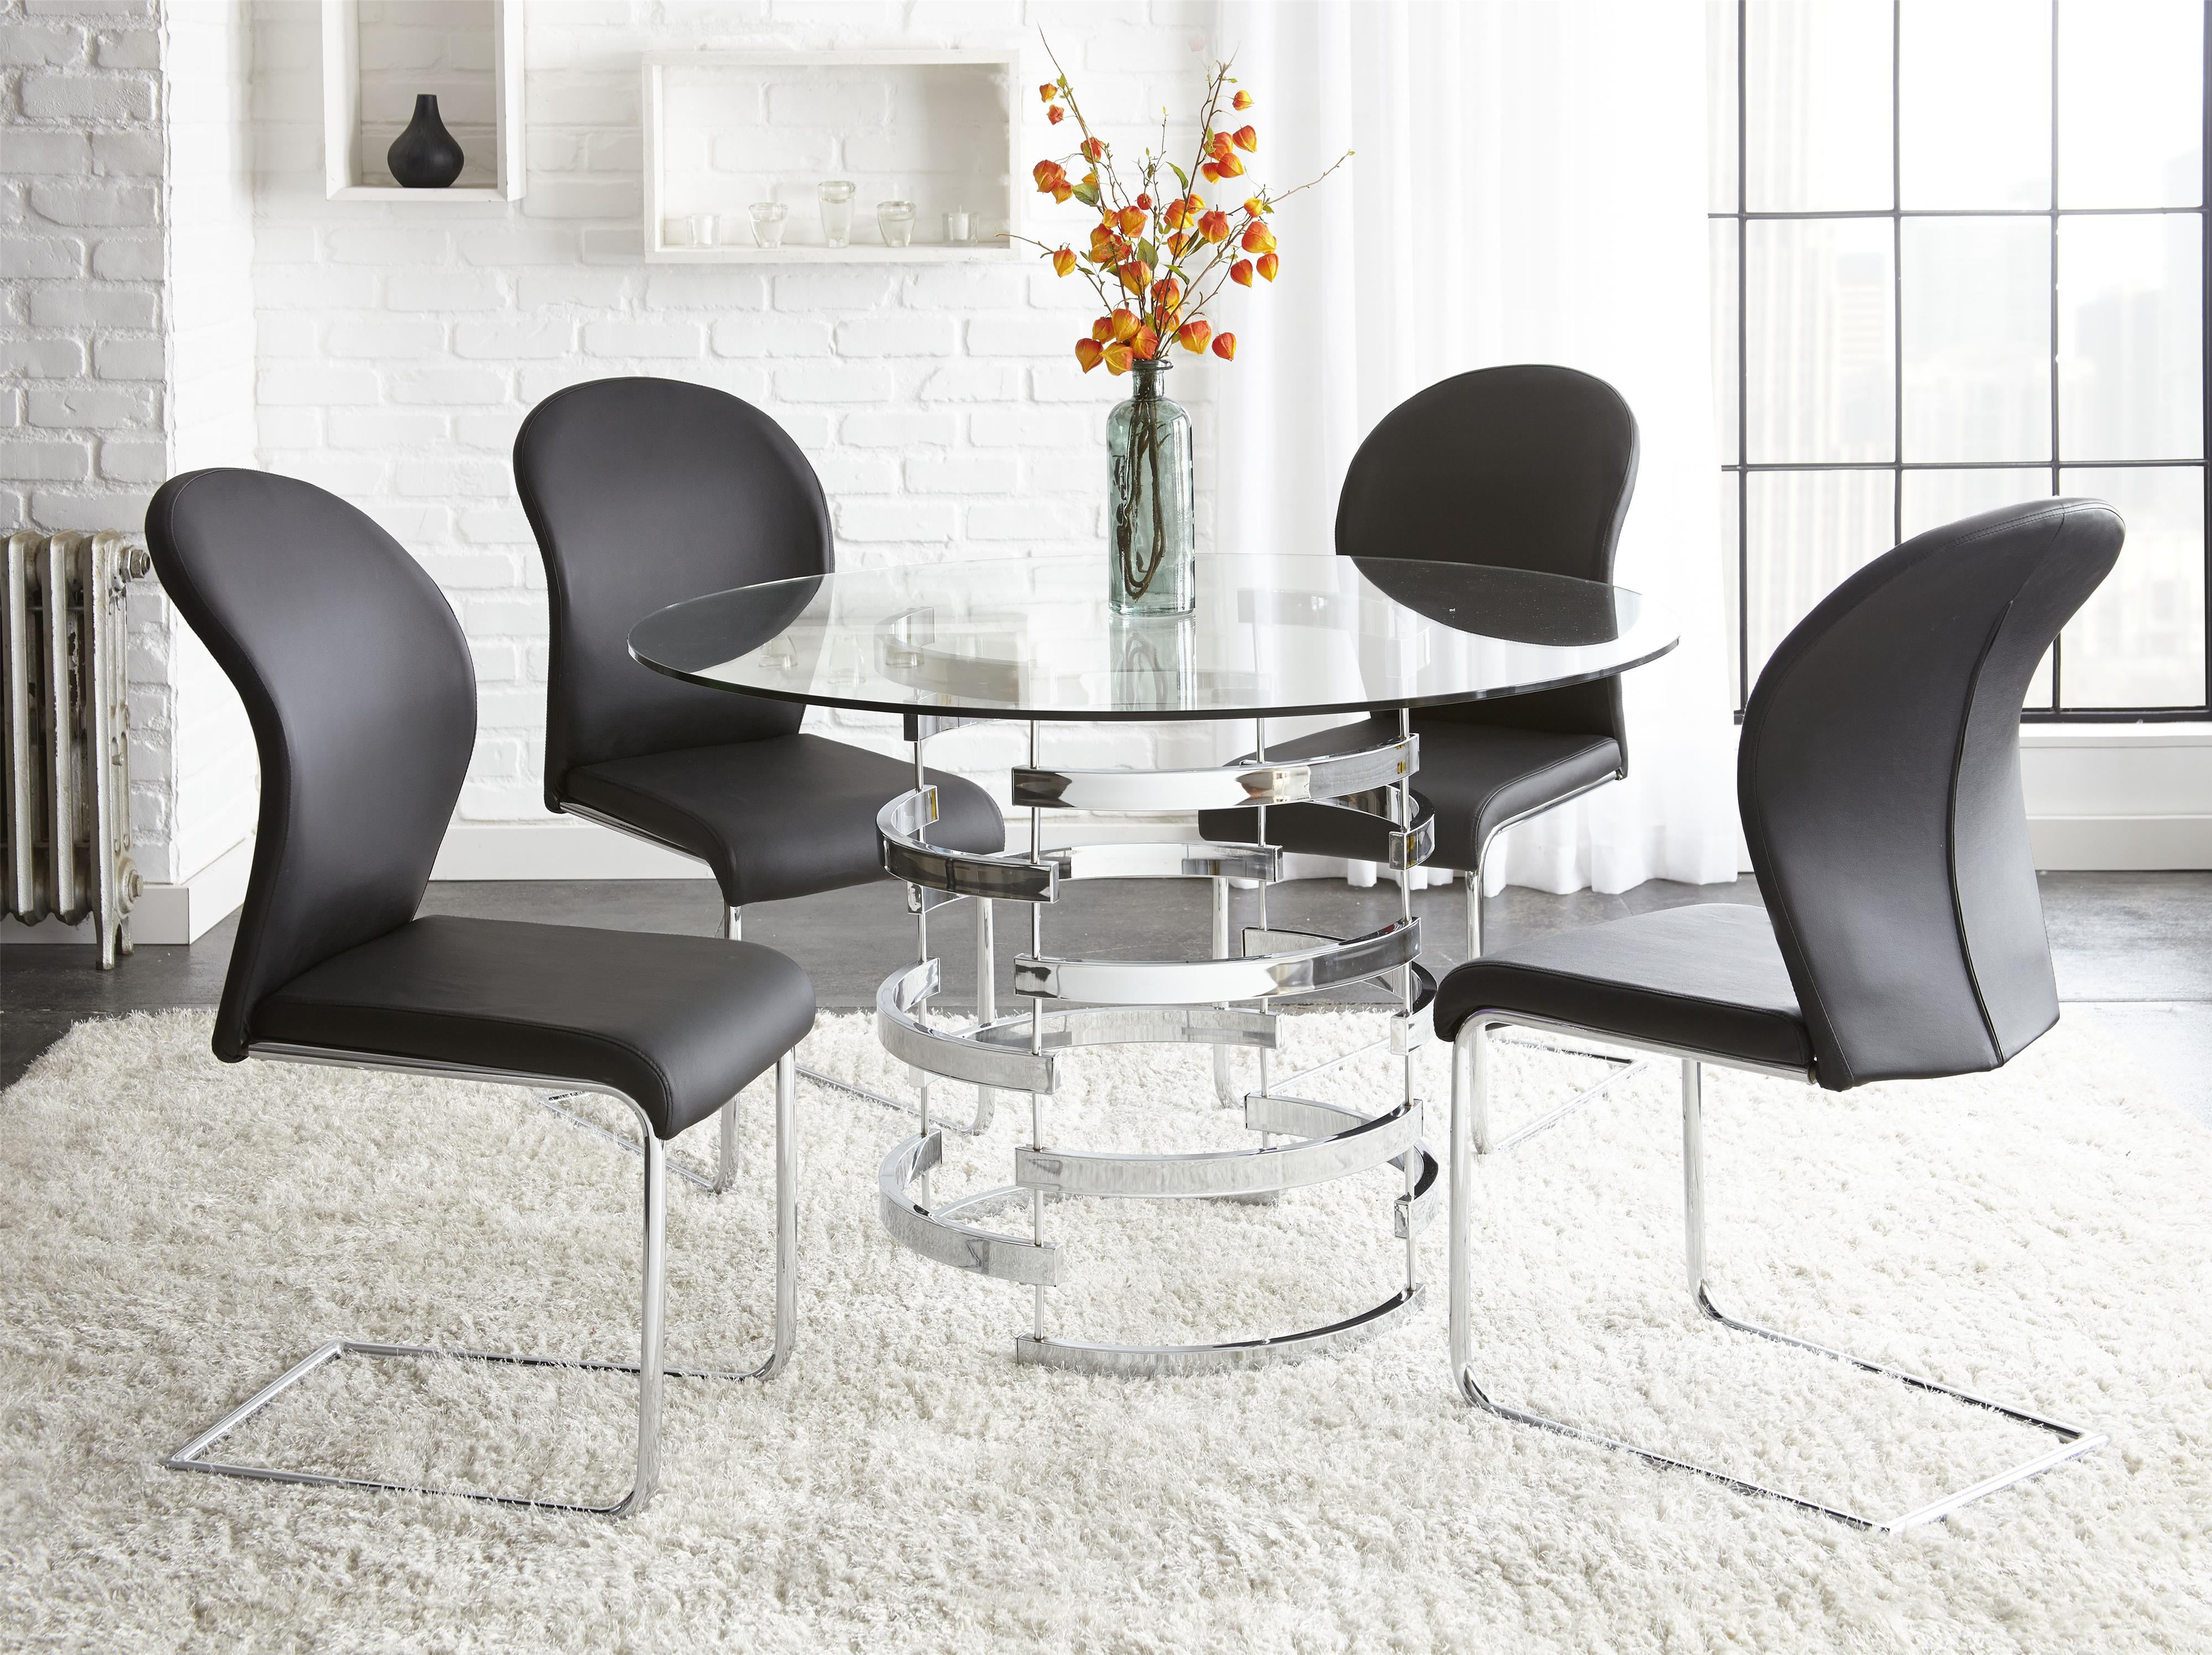 Prime Tayside 5 Piece Dining Table Set   Item Number: TS450T+B+4xSK